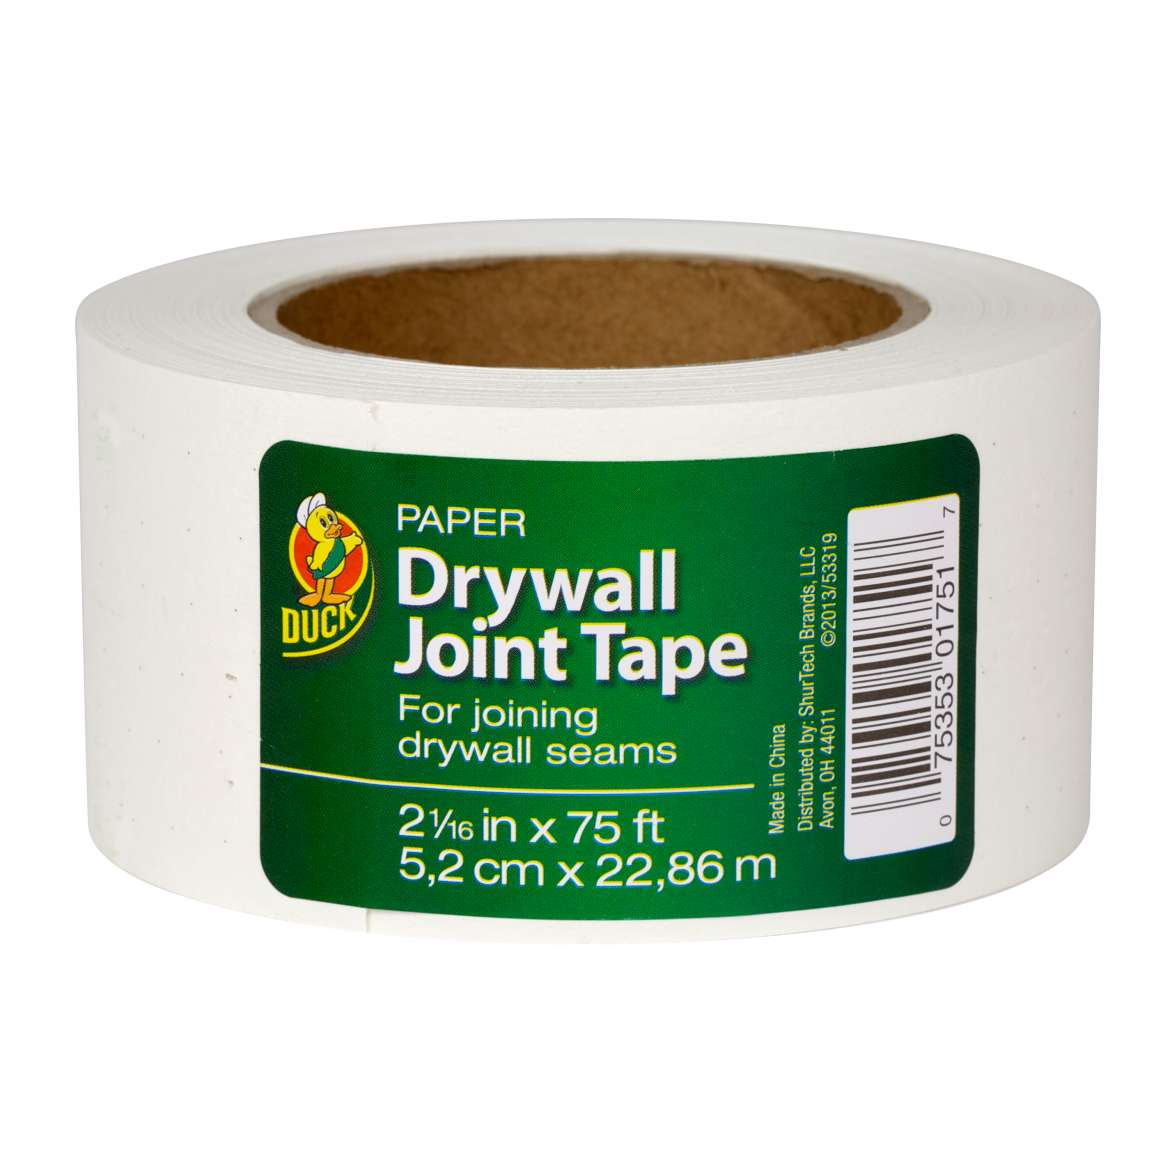 Paper Drywall Joint Tape Image